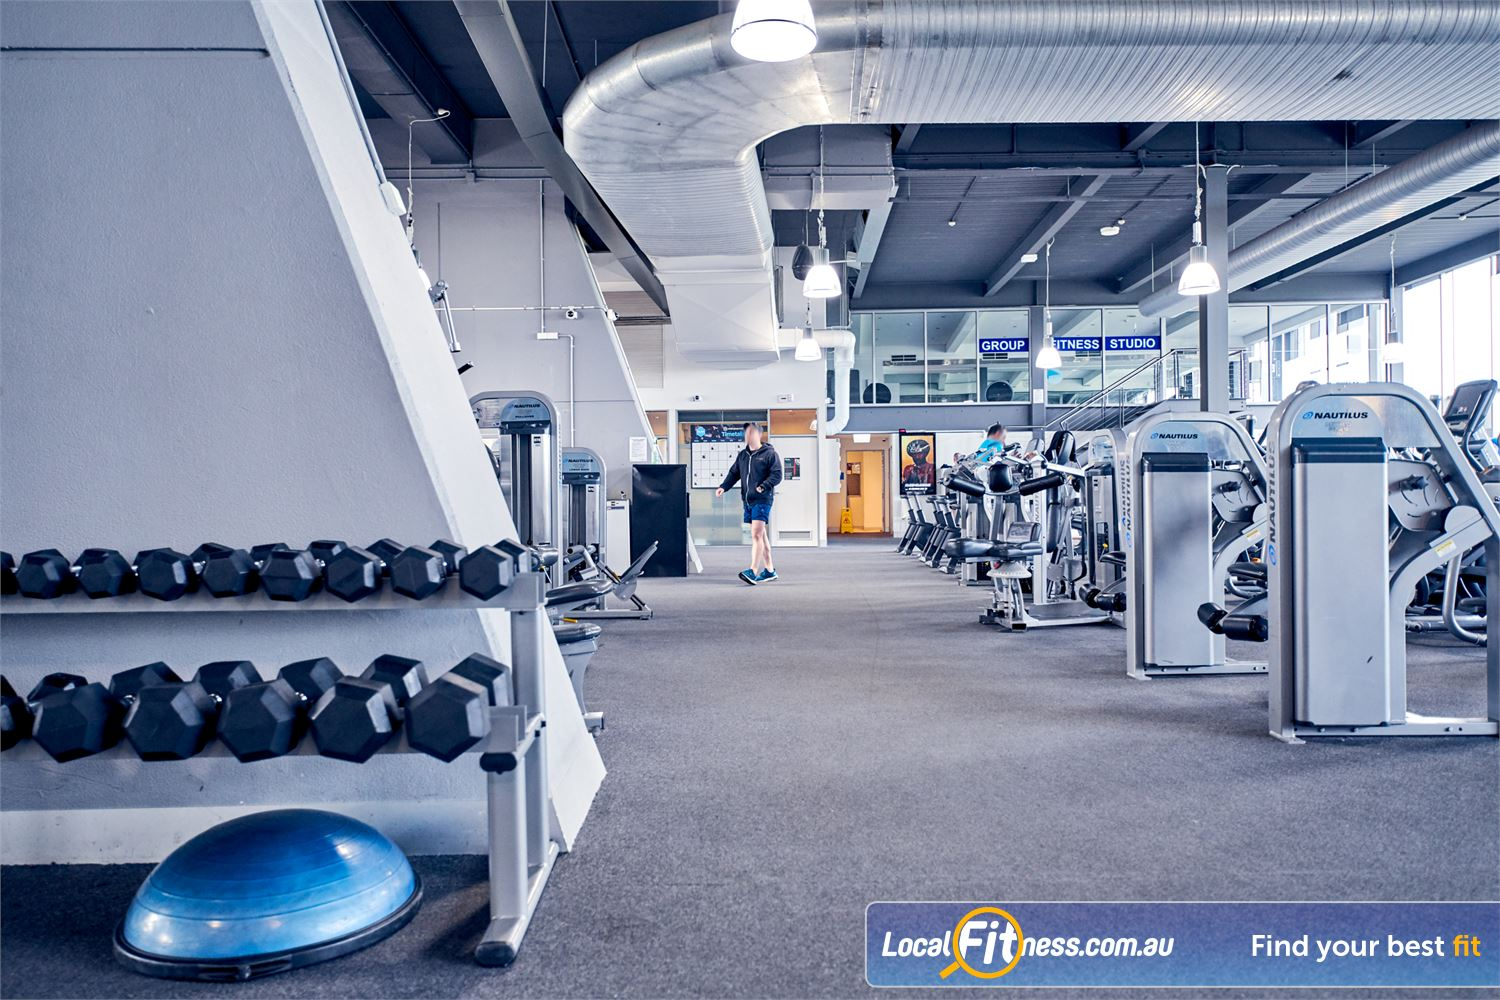 Goodlife Health Clubs Waverley Park Mulgrave State of the art equipment from Nautilus in our modern Mulgrave gym.